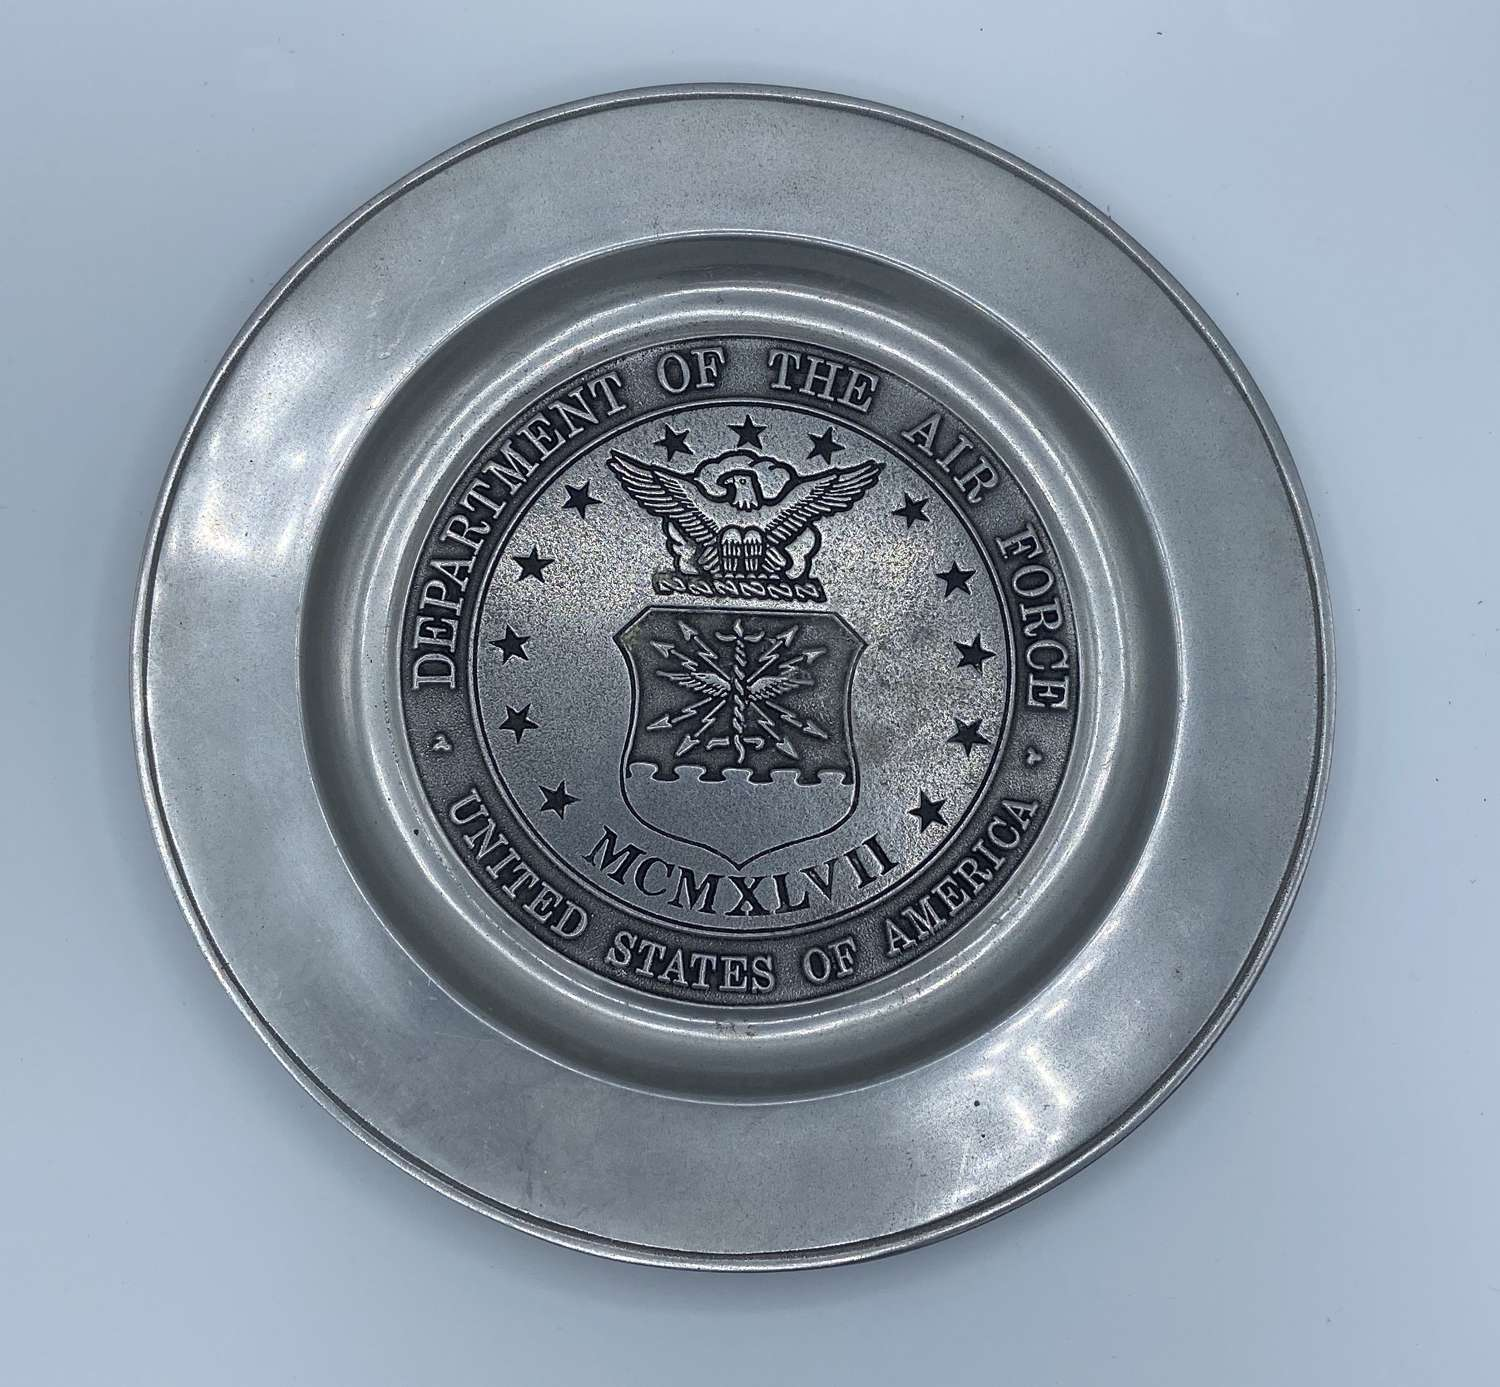 Department Of The Air Force USA Pewter Plate